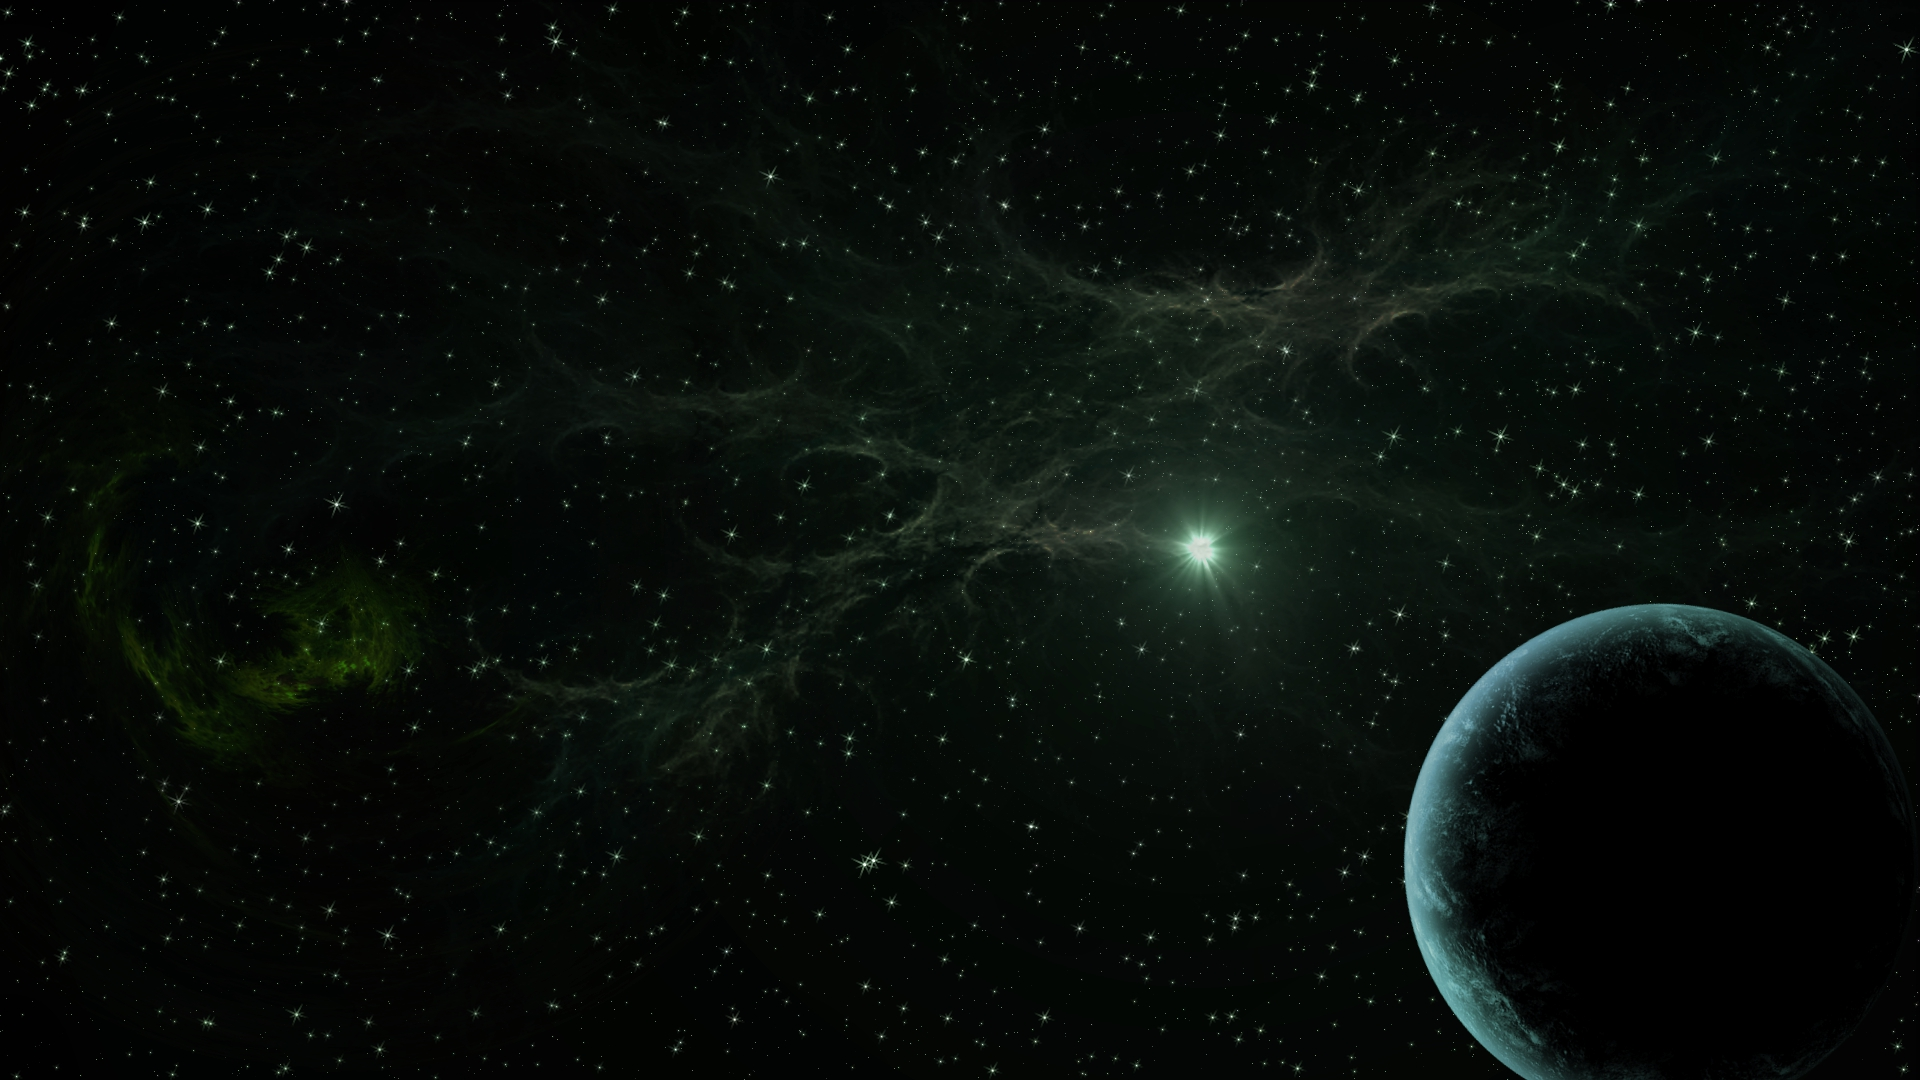 taurus nebula backgrounds - photo #9